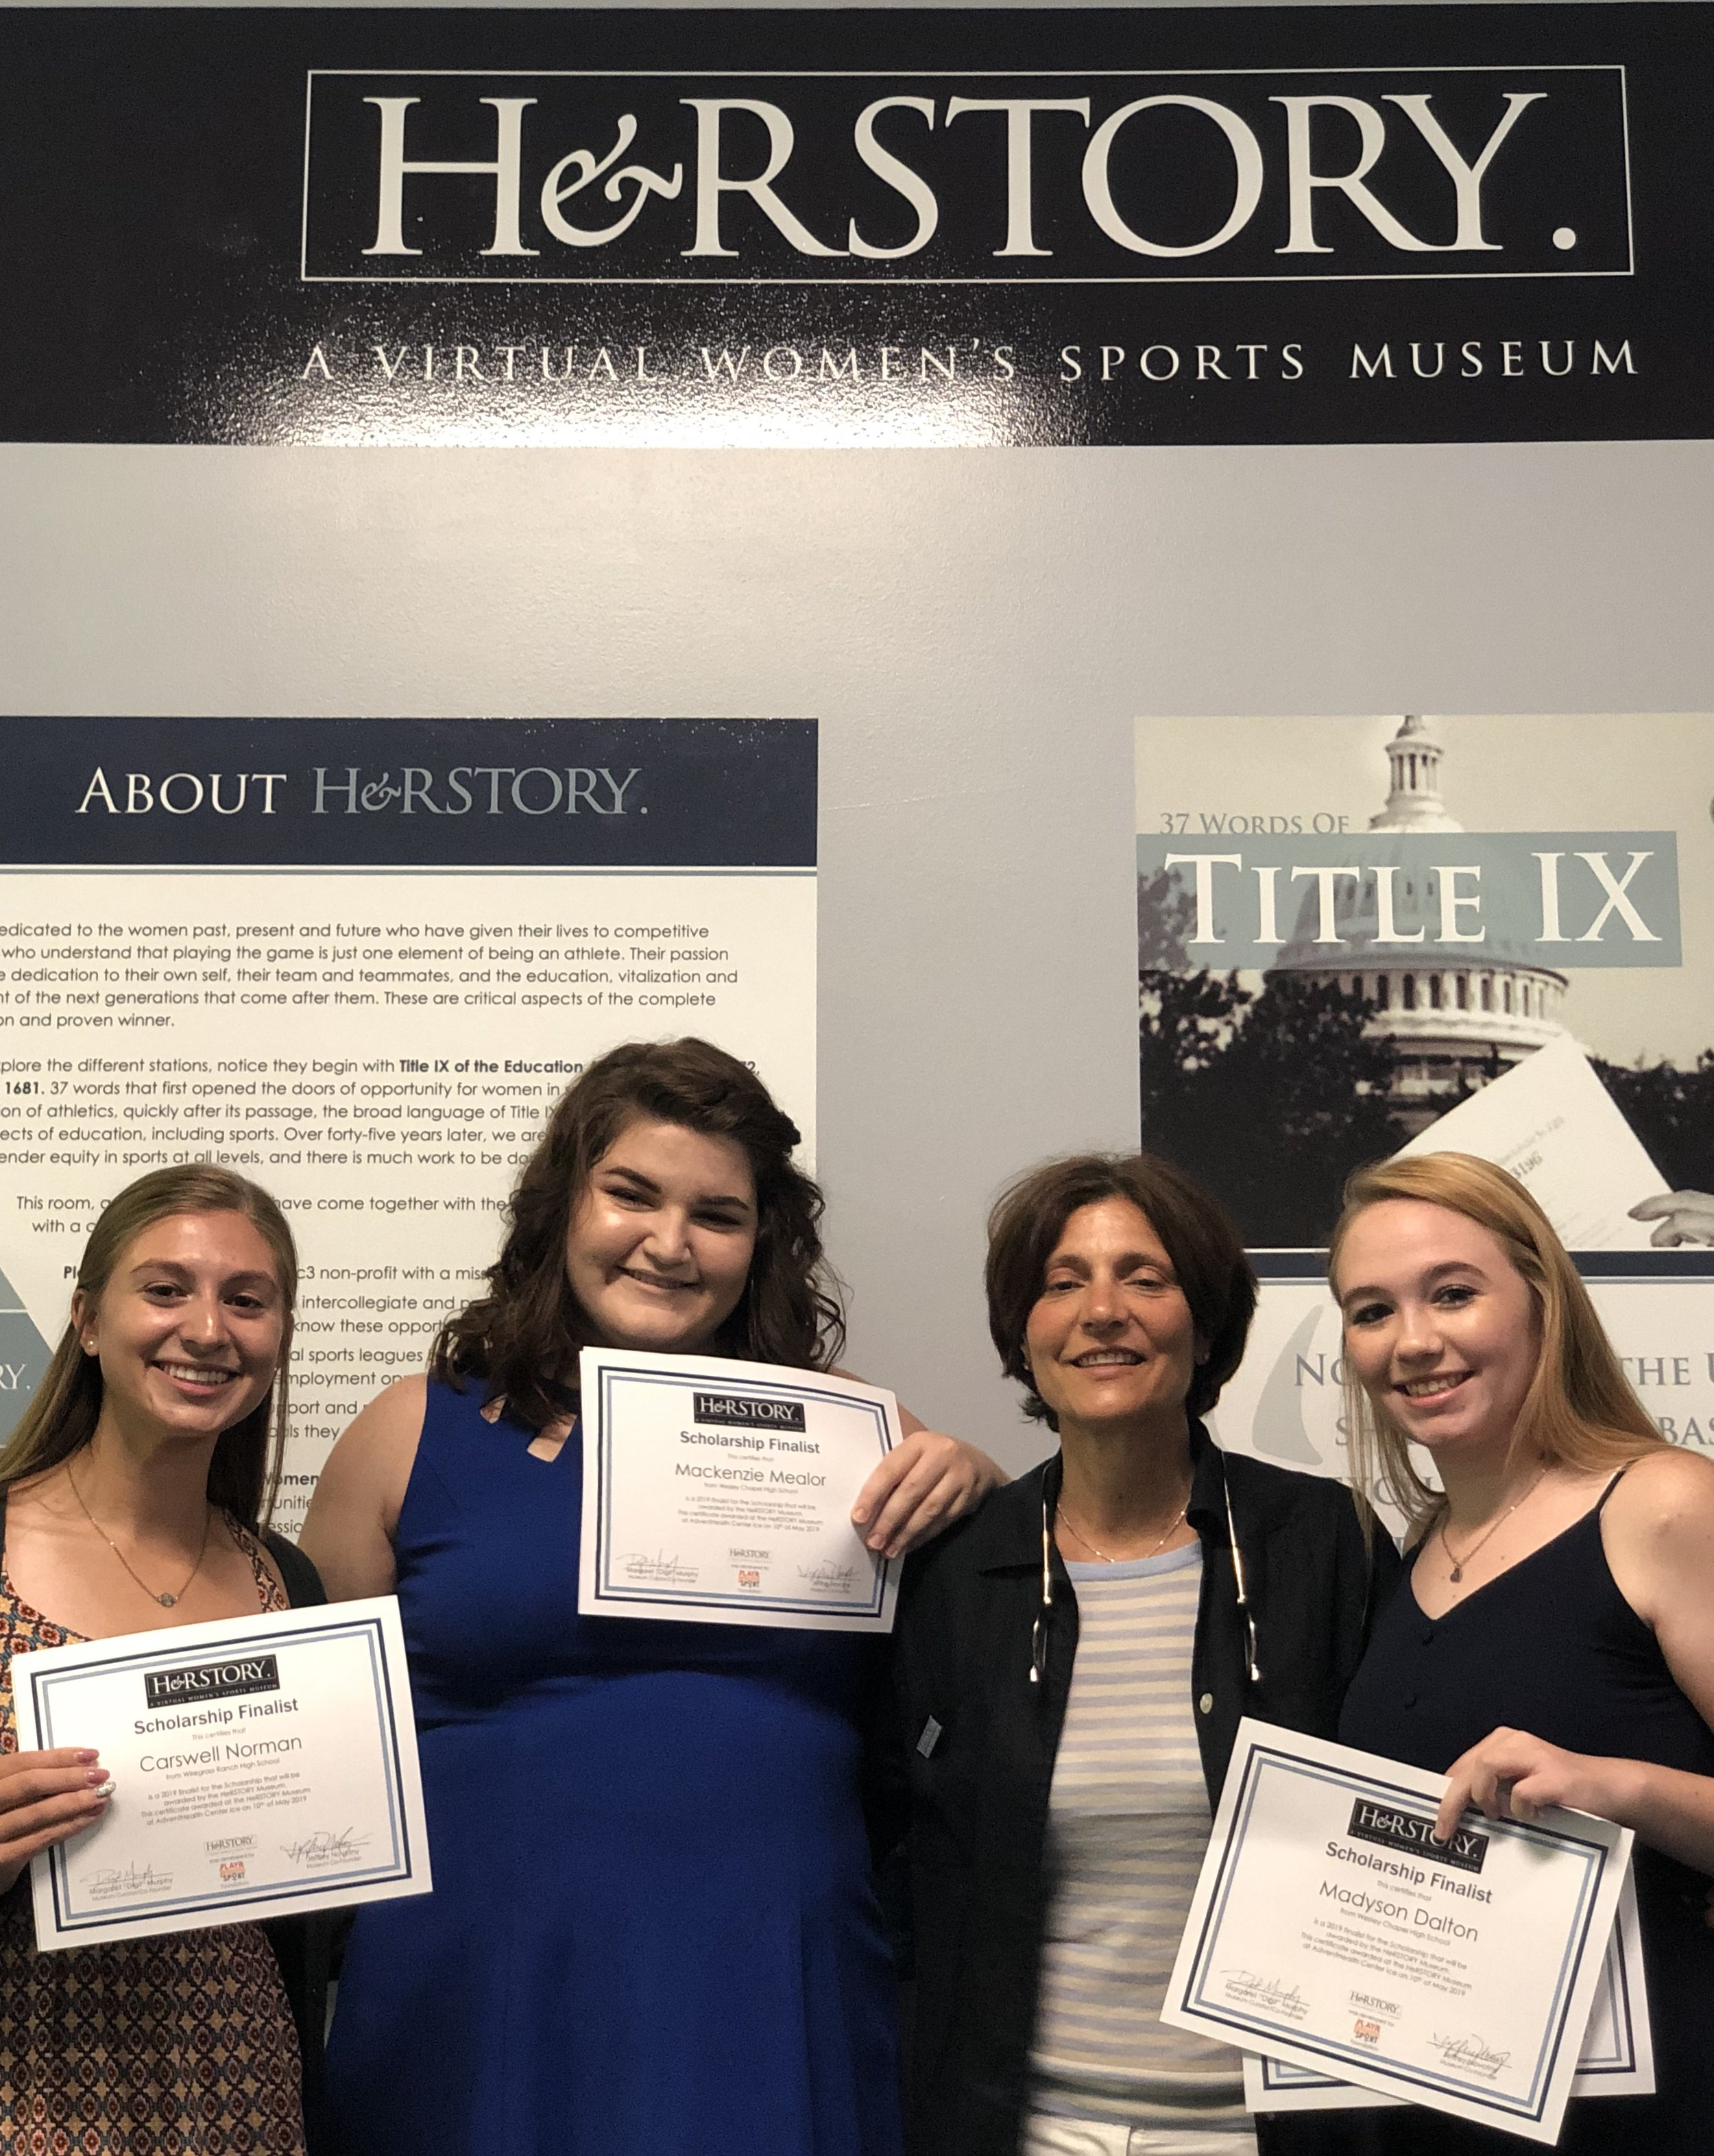 Three of our finalists meet Digit Murphy - Three of the 2019 Scholarship Finalists at the Meet and Greet Event on May 10, 2019 from left to right: Carswell Norman - Wiregrass Ranch HS (Lacrosse), Mackenzie Mealor - Wesley Chapel HS (Softball), Digit Murphy - HeRSTORY Founder, Madyson Dalton - Wesley Chapel HS (Cheerleading/Soccer).